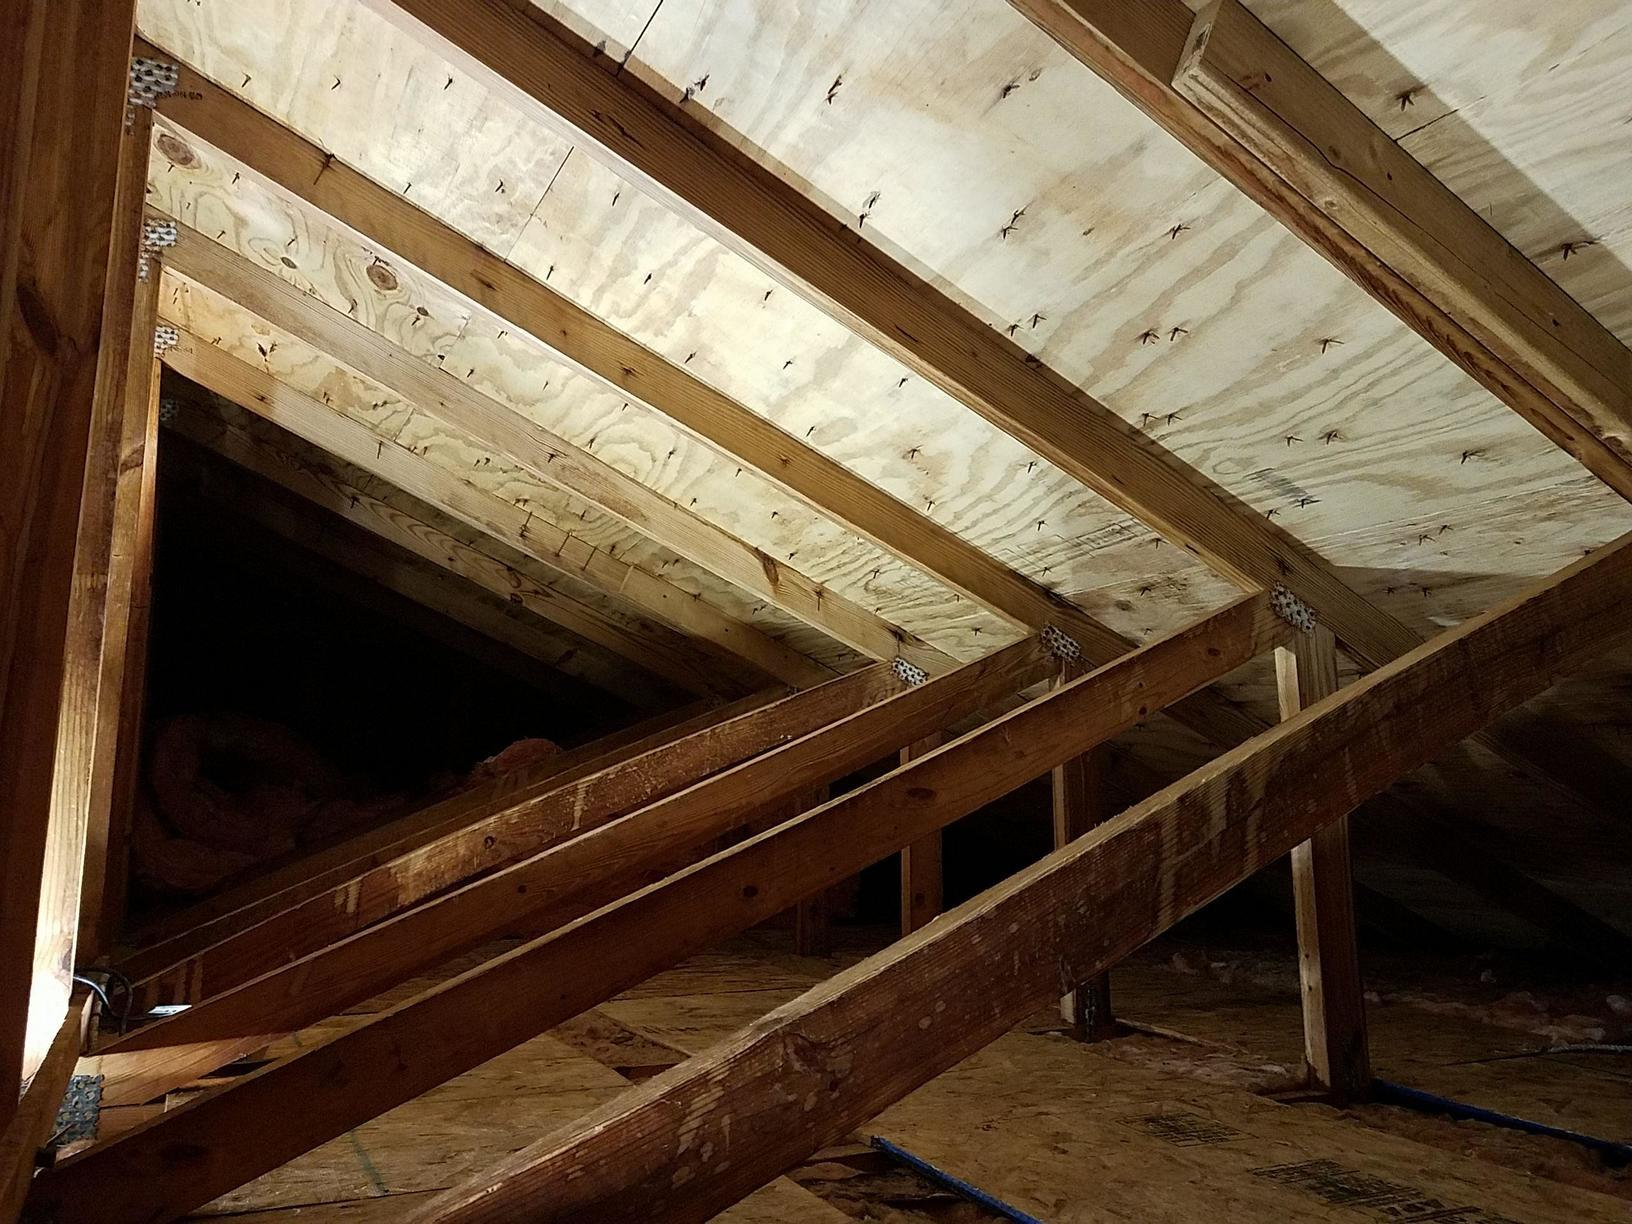 Attic mold in Newtown, CT - After Photo